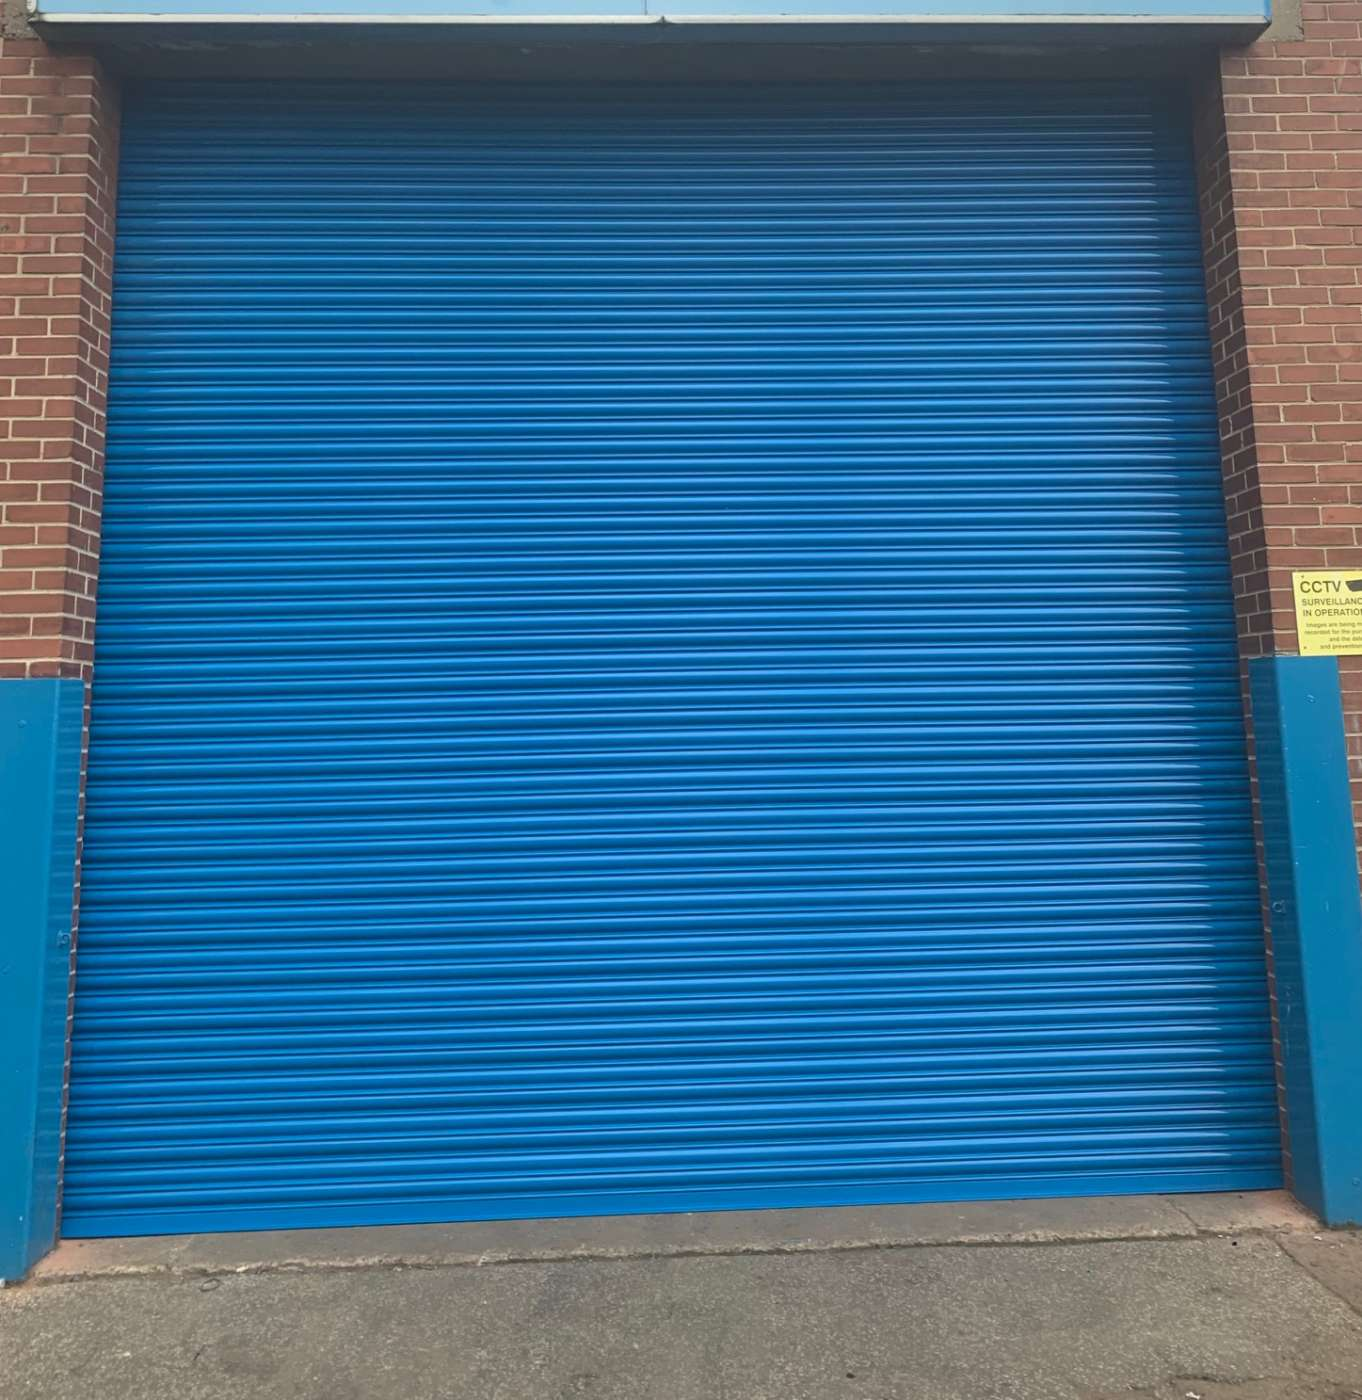 New Roller Shutter Fitted in Hull, in Bright Blue